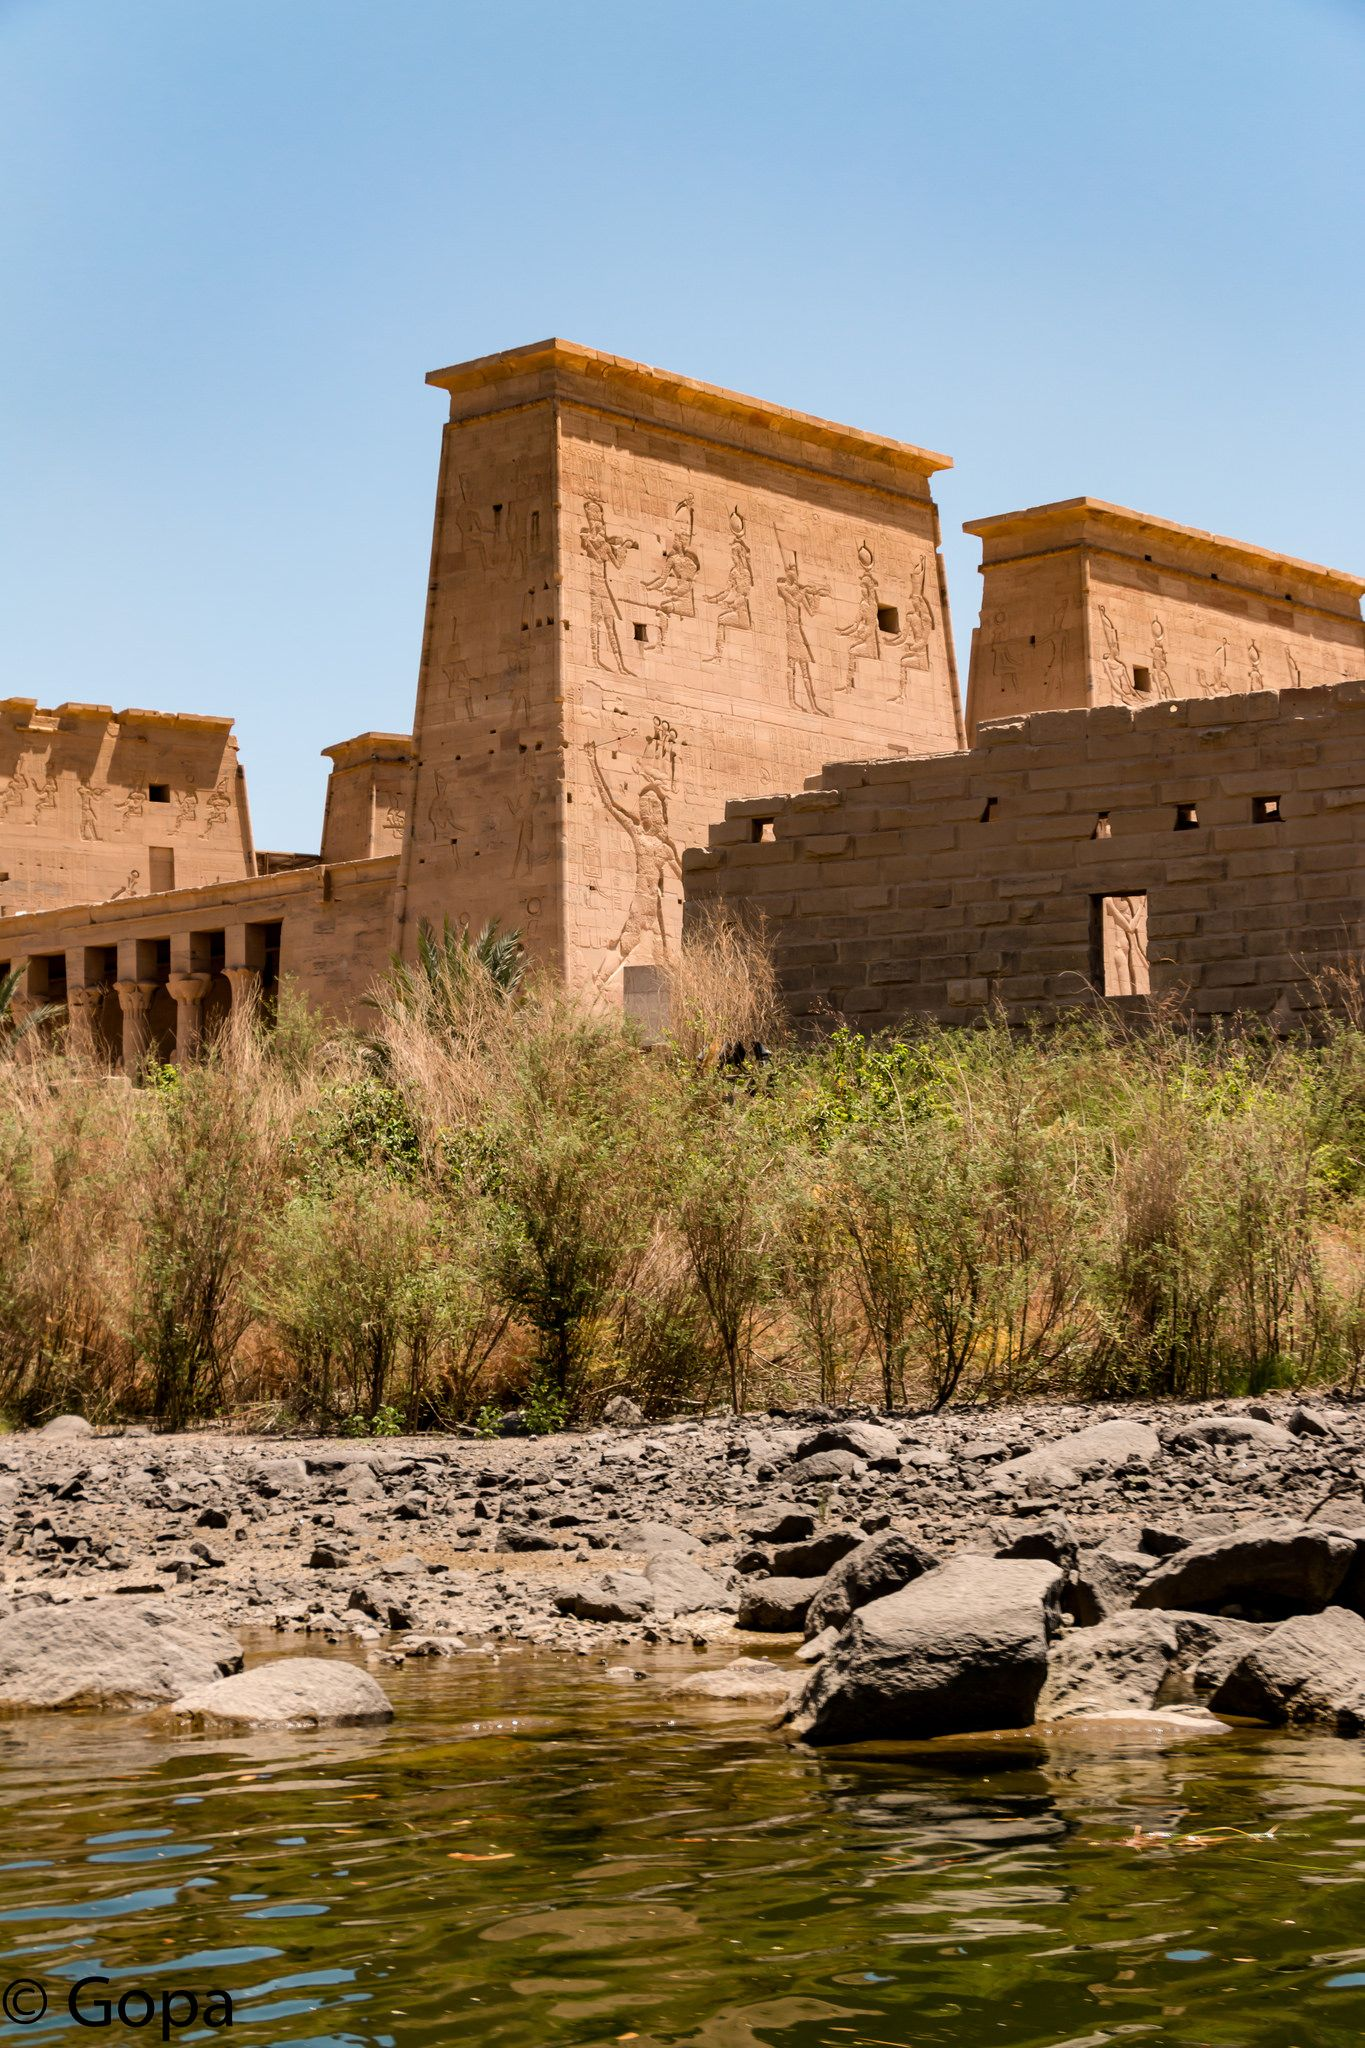 Philae Temple, Aswan | View from across the Nile